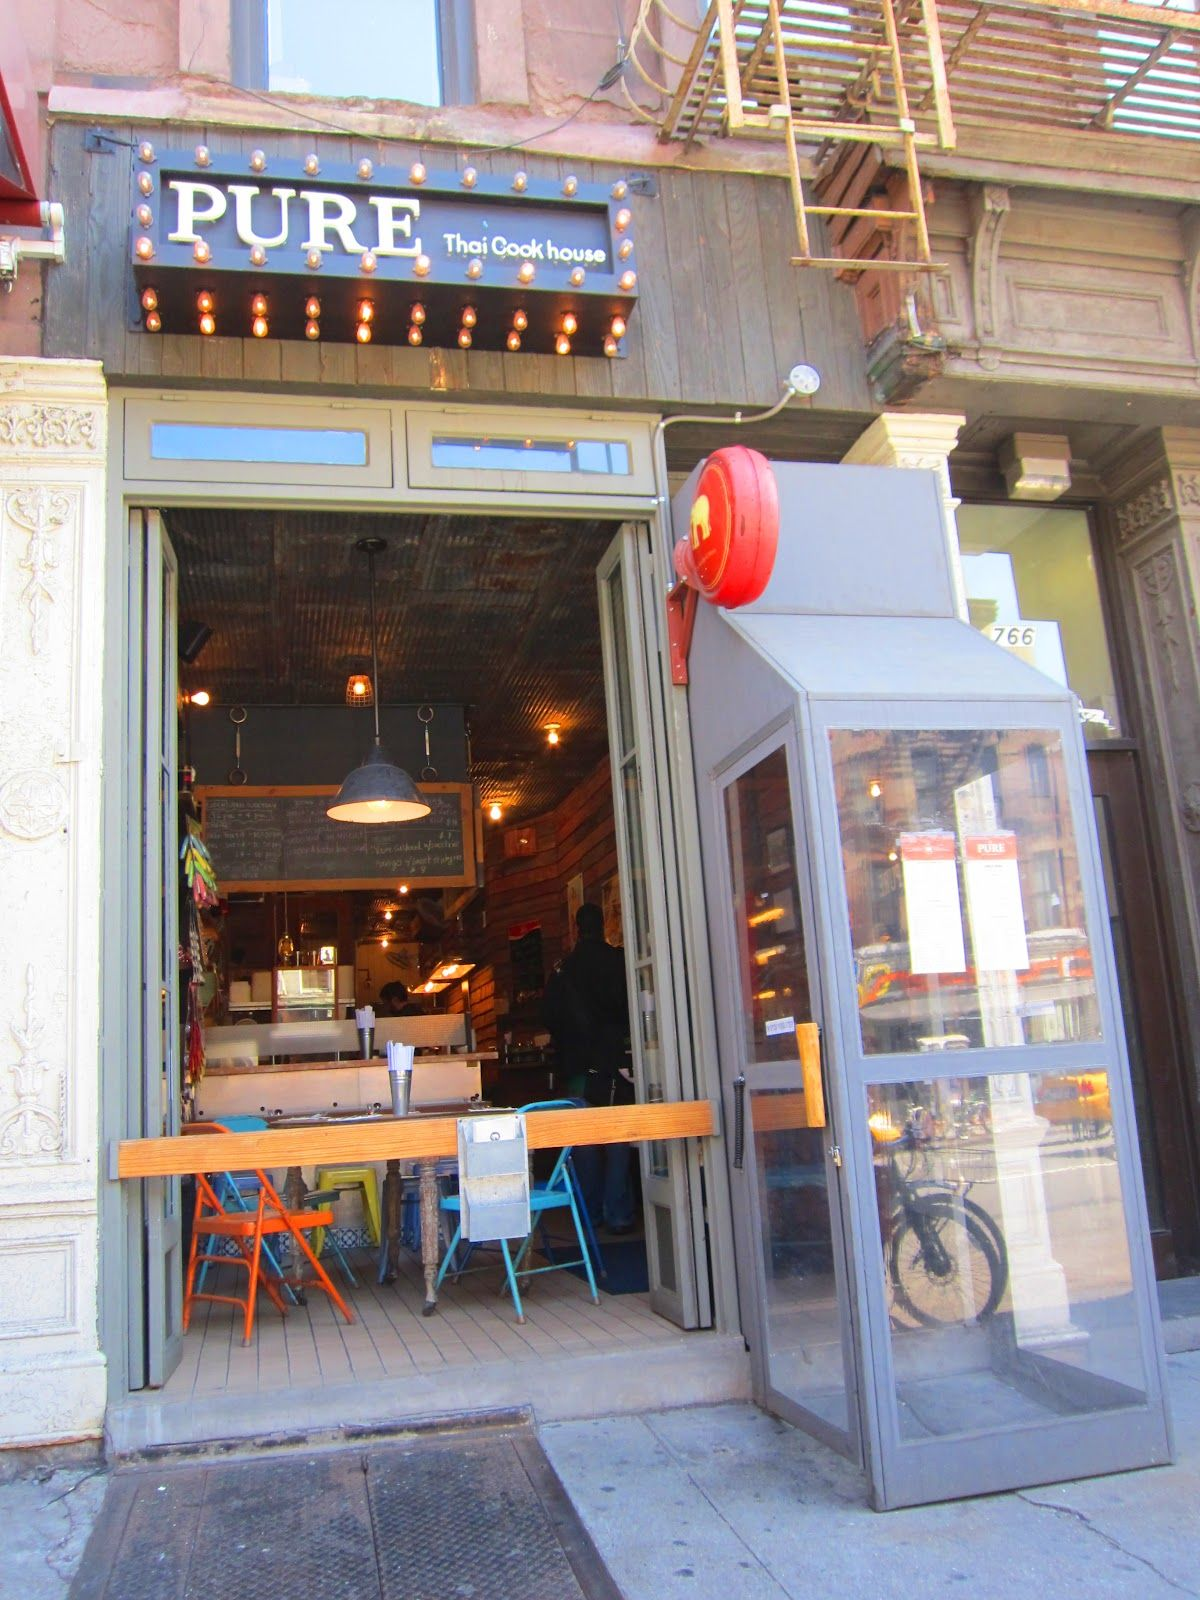 pure thai cookhouse 766 9th Ave New York, NY 10019 b/t 51st St ...